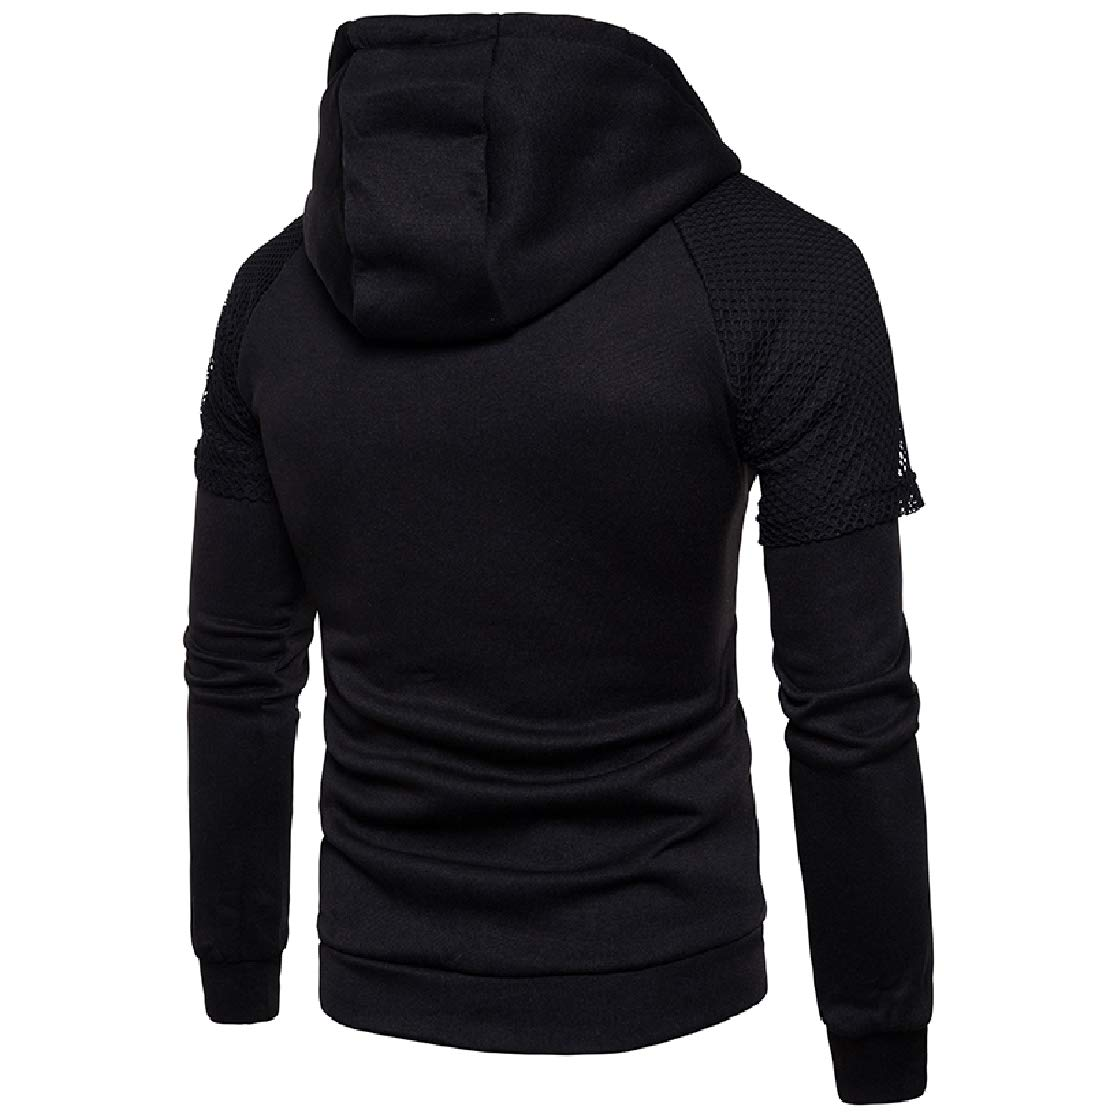 YUNY Mens Letter Printed Hood Pullover Plus Size Sweatshirts Top Black M